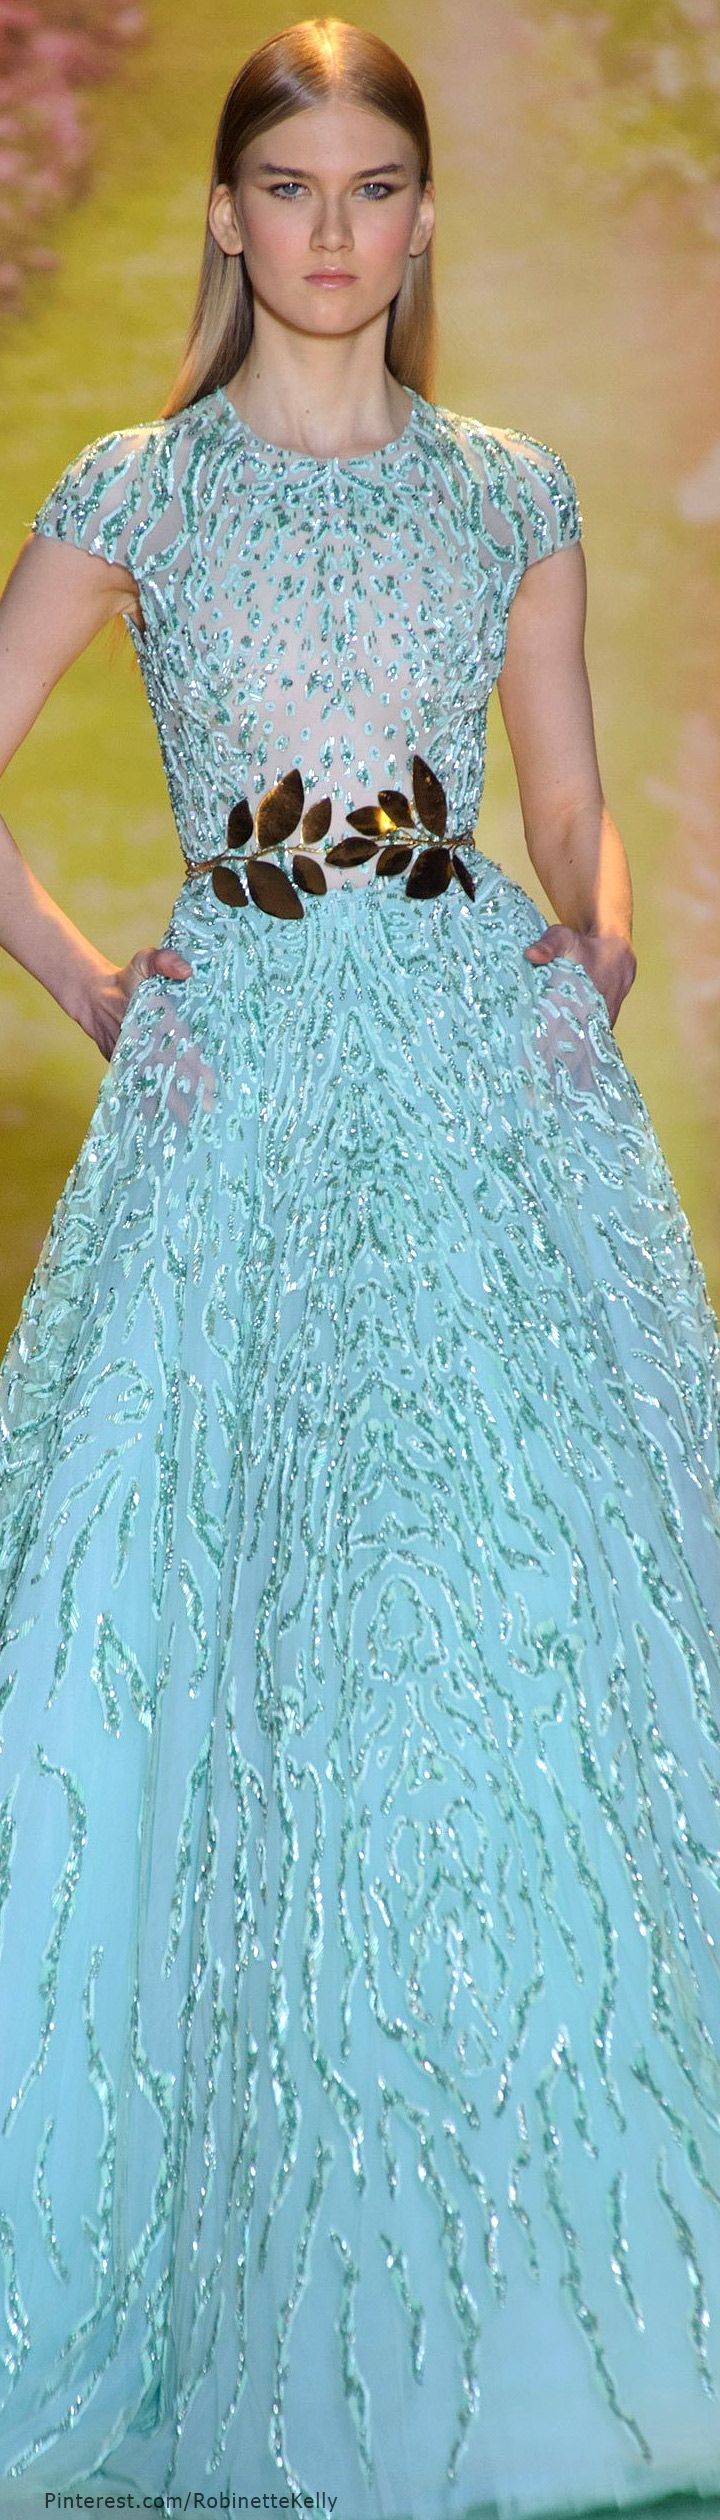 246 best Belle of the ball masquerade images on Pinterest | Party ...